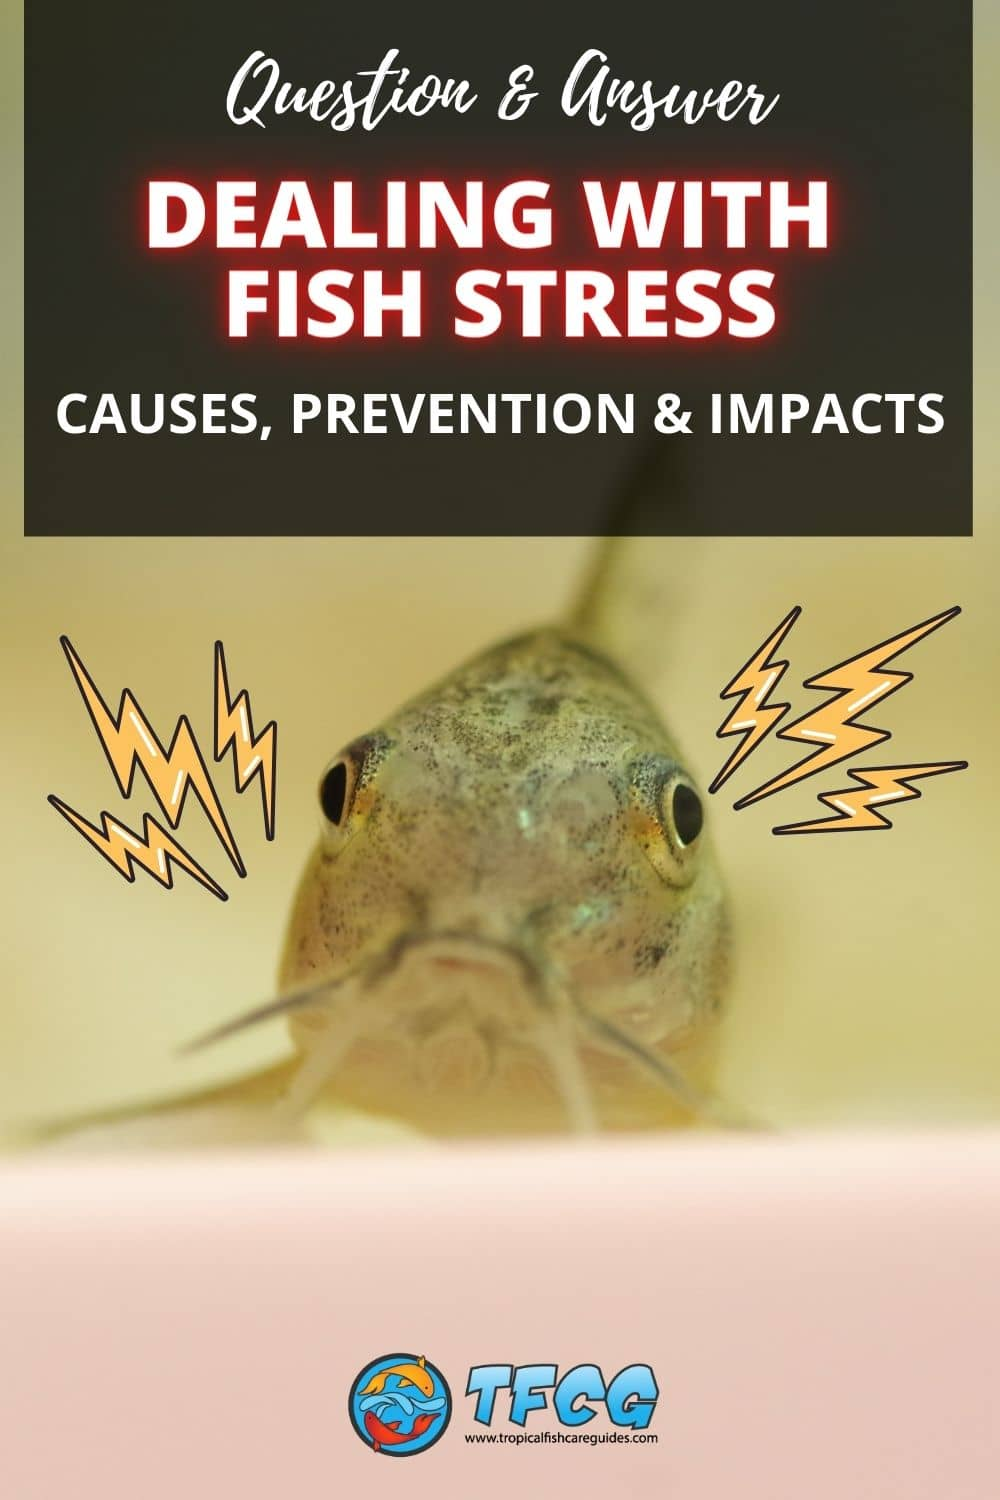 Dealing With Stressed Fish In A New Tank - Causes, Prevention & Impacts